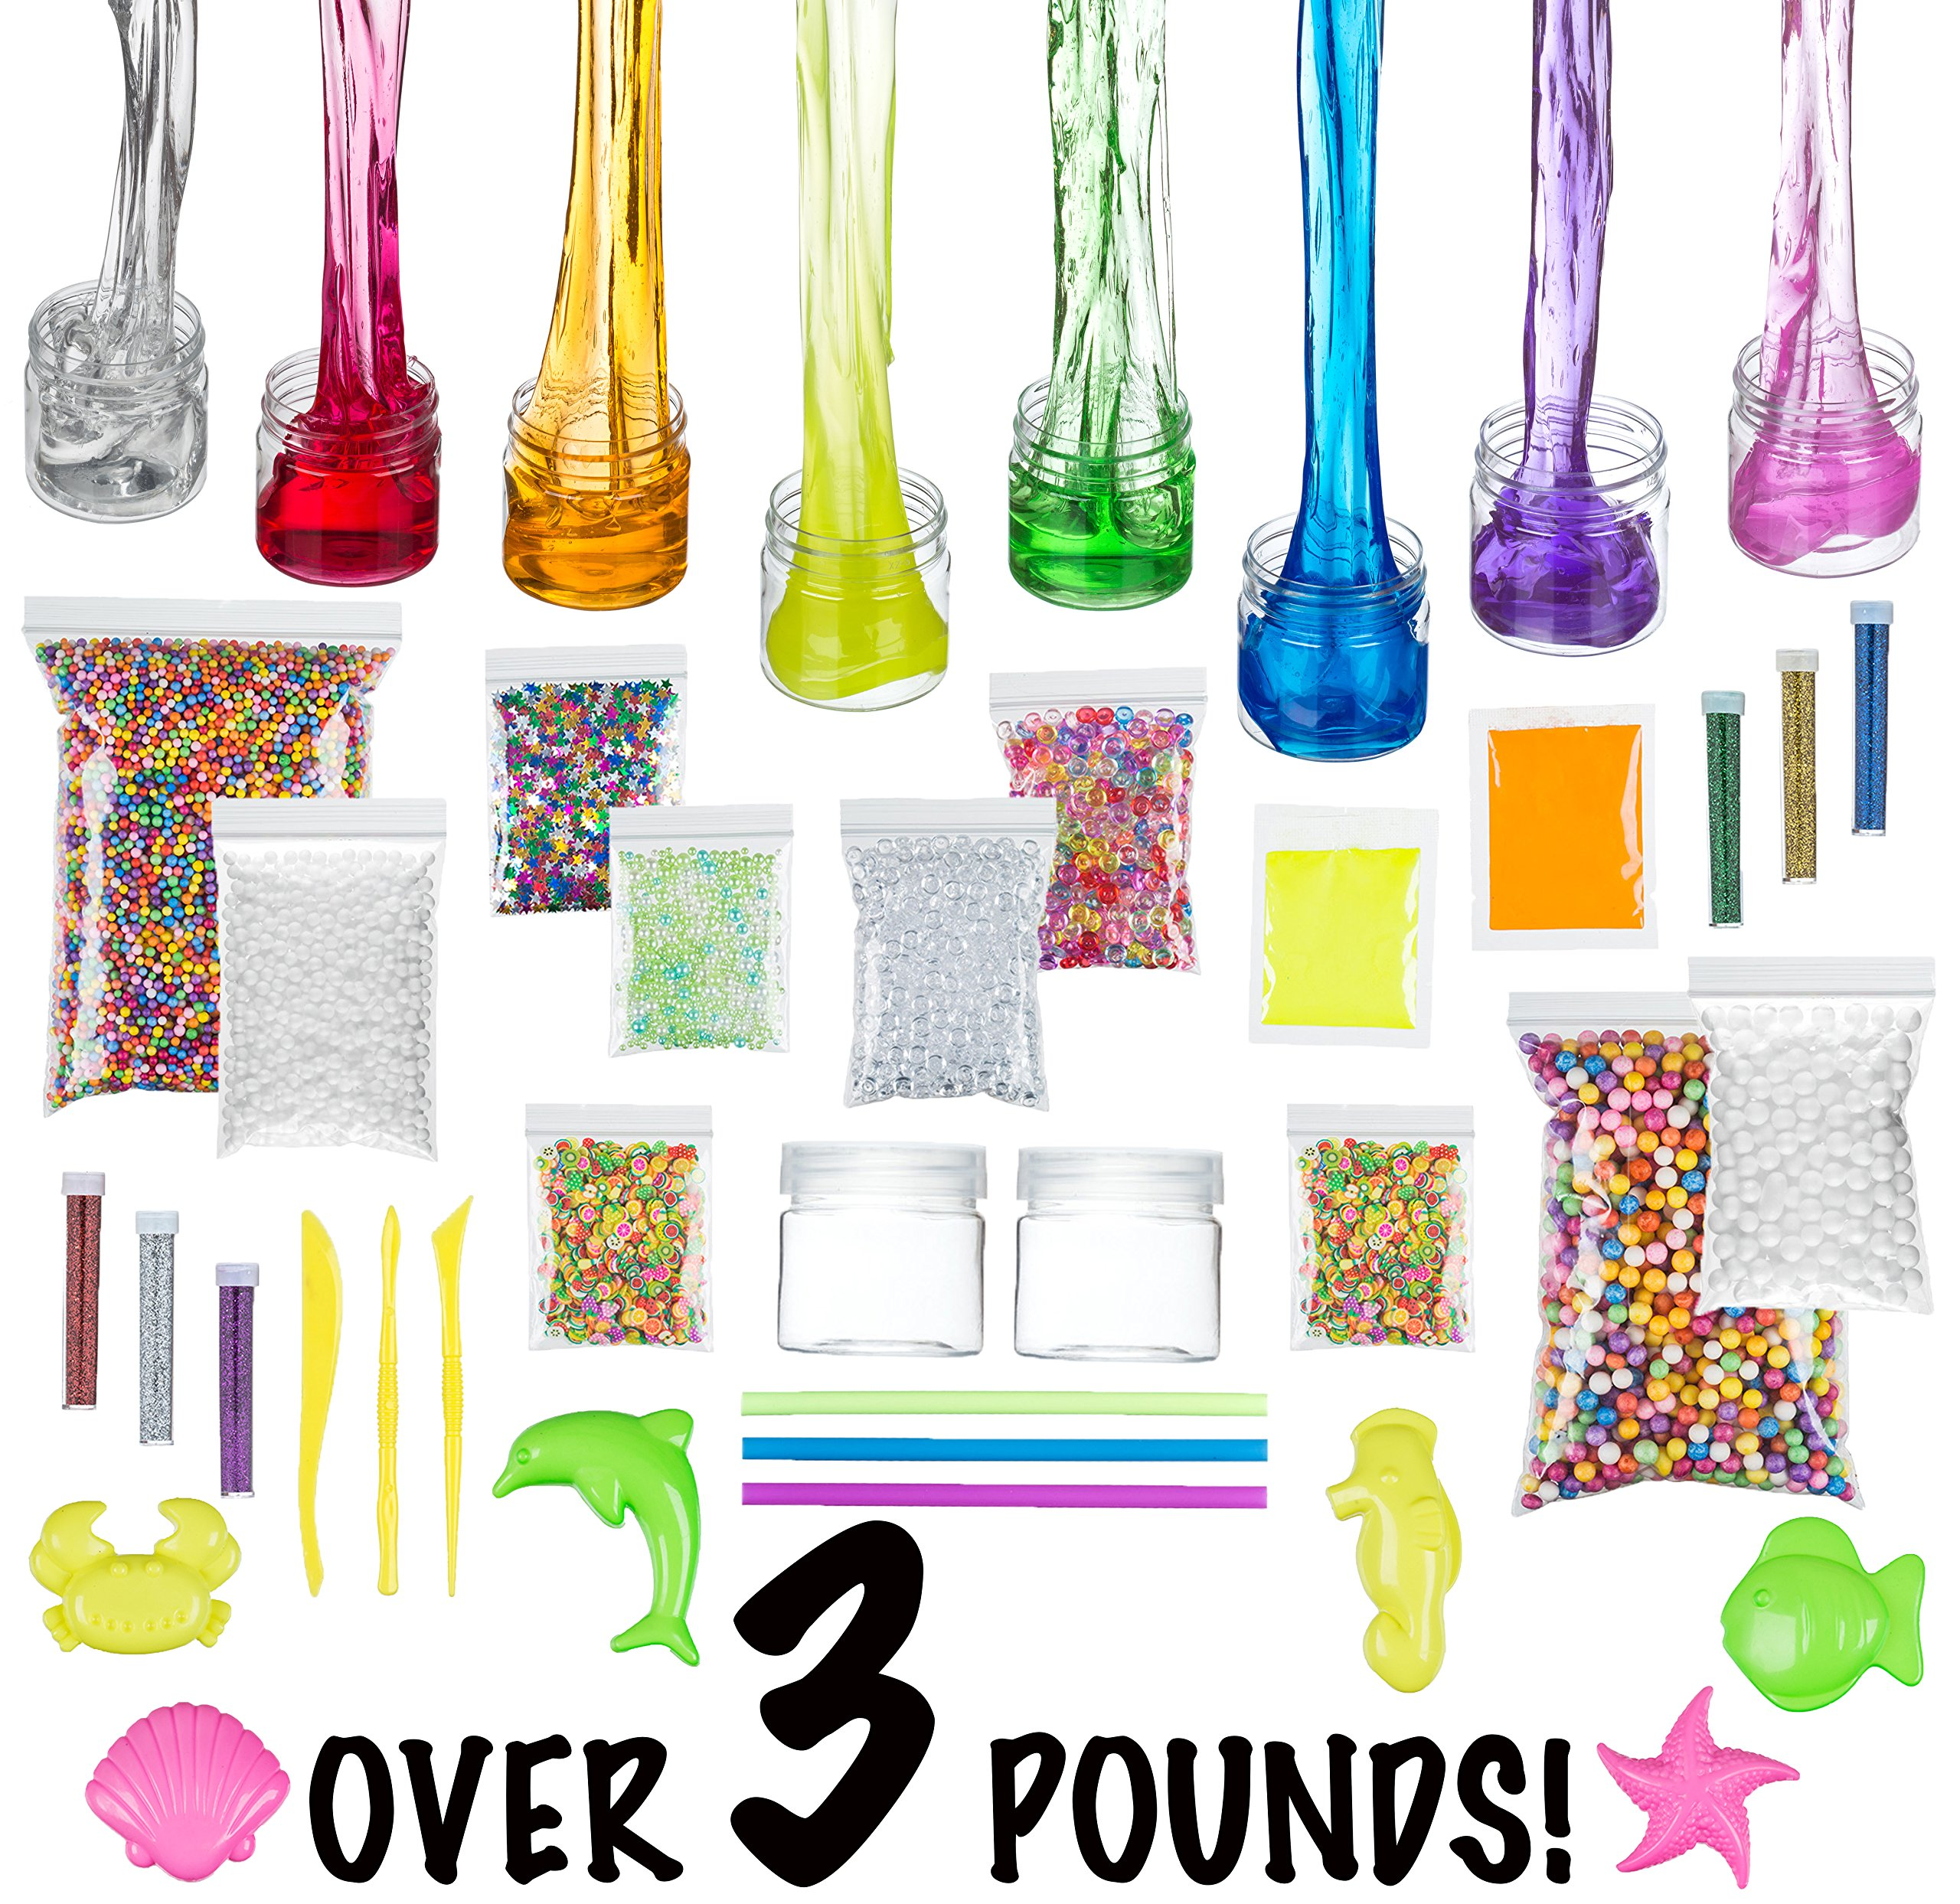 Trika Toyz Slime DIY Kit (Girls/Boys) - Slime Making/Mixing Supplies, Containers, Clear Slime 28oz/800g, Fluffy Foam, Crunchy Fishbowl Beads, Fruit Slices, Glitter, Glow Powder, & More